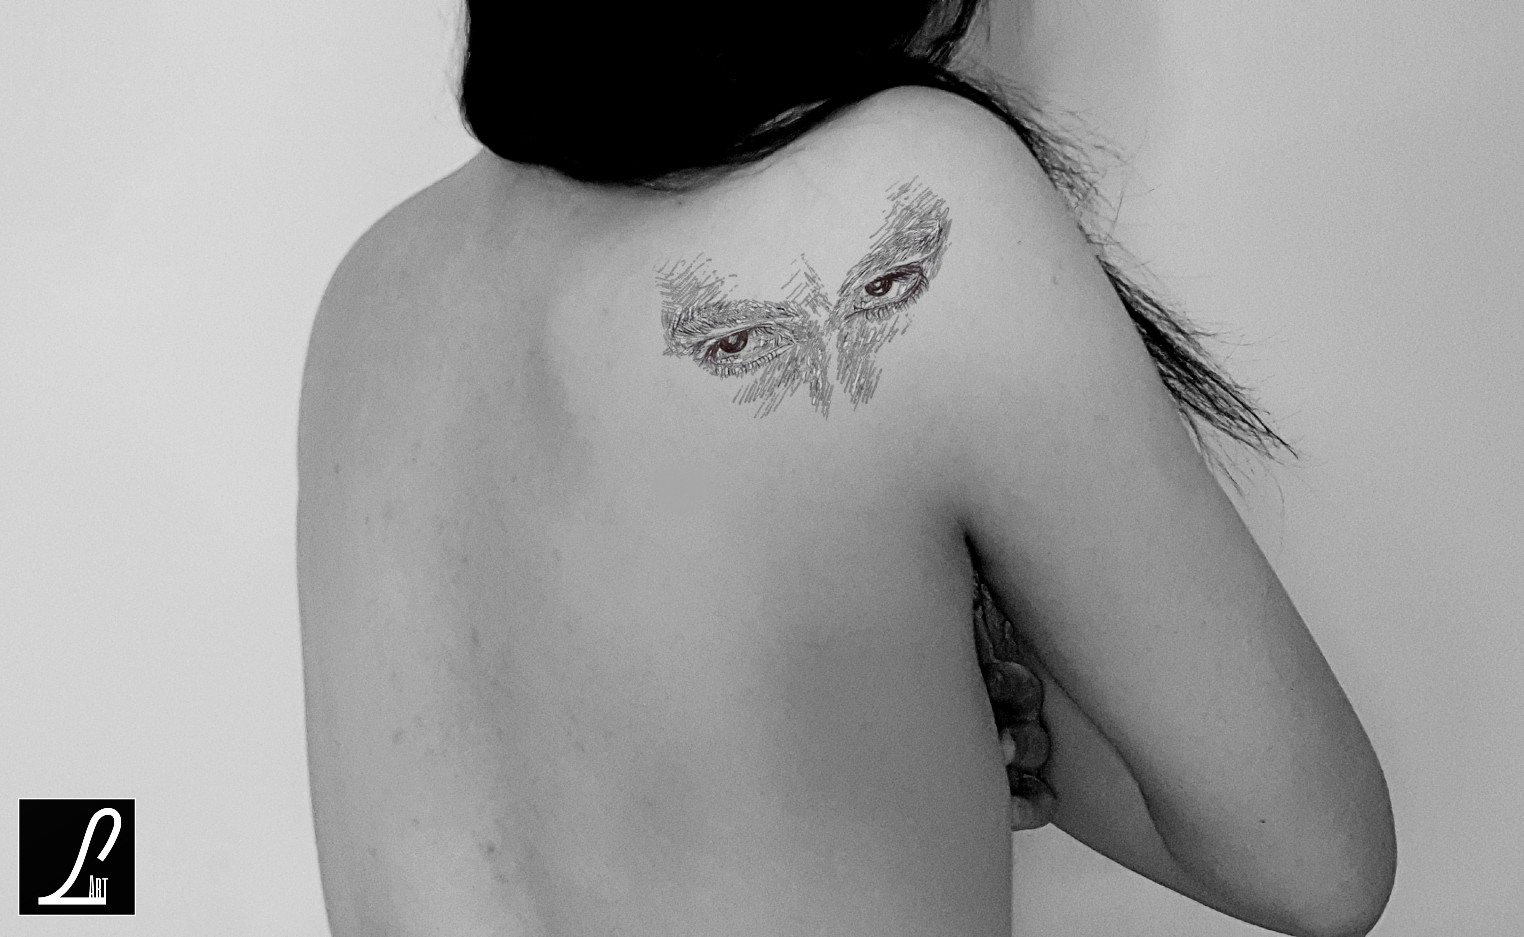 TATTOO BACK,SHOUDTER -  DARK EYES